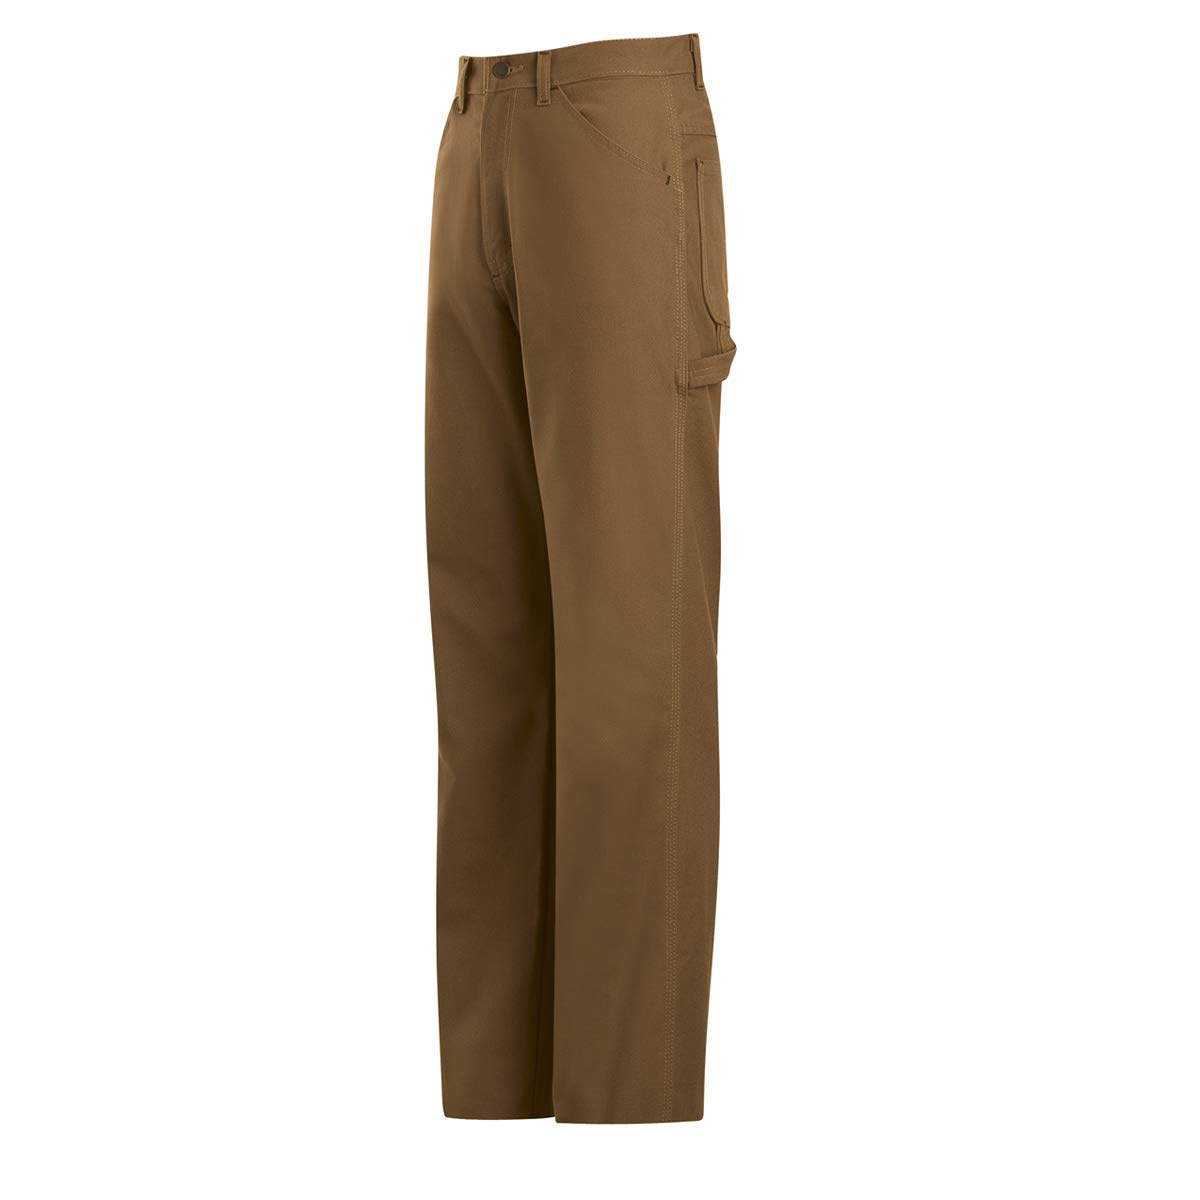 Bulwark 32 X 30 Brown Cotton Excel FR ComforTouch Nylon Flame Resistant Jeans With Zipper Closure